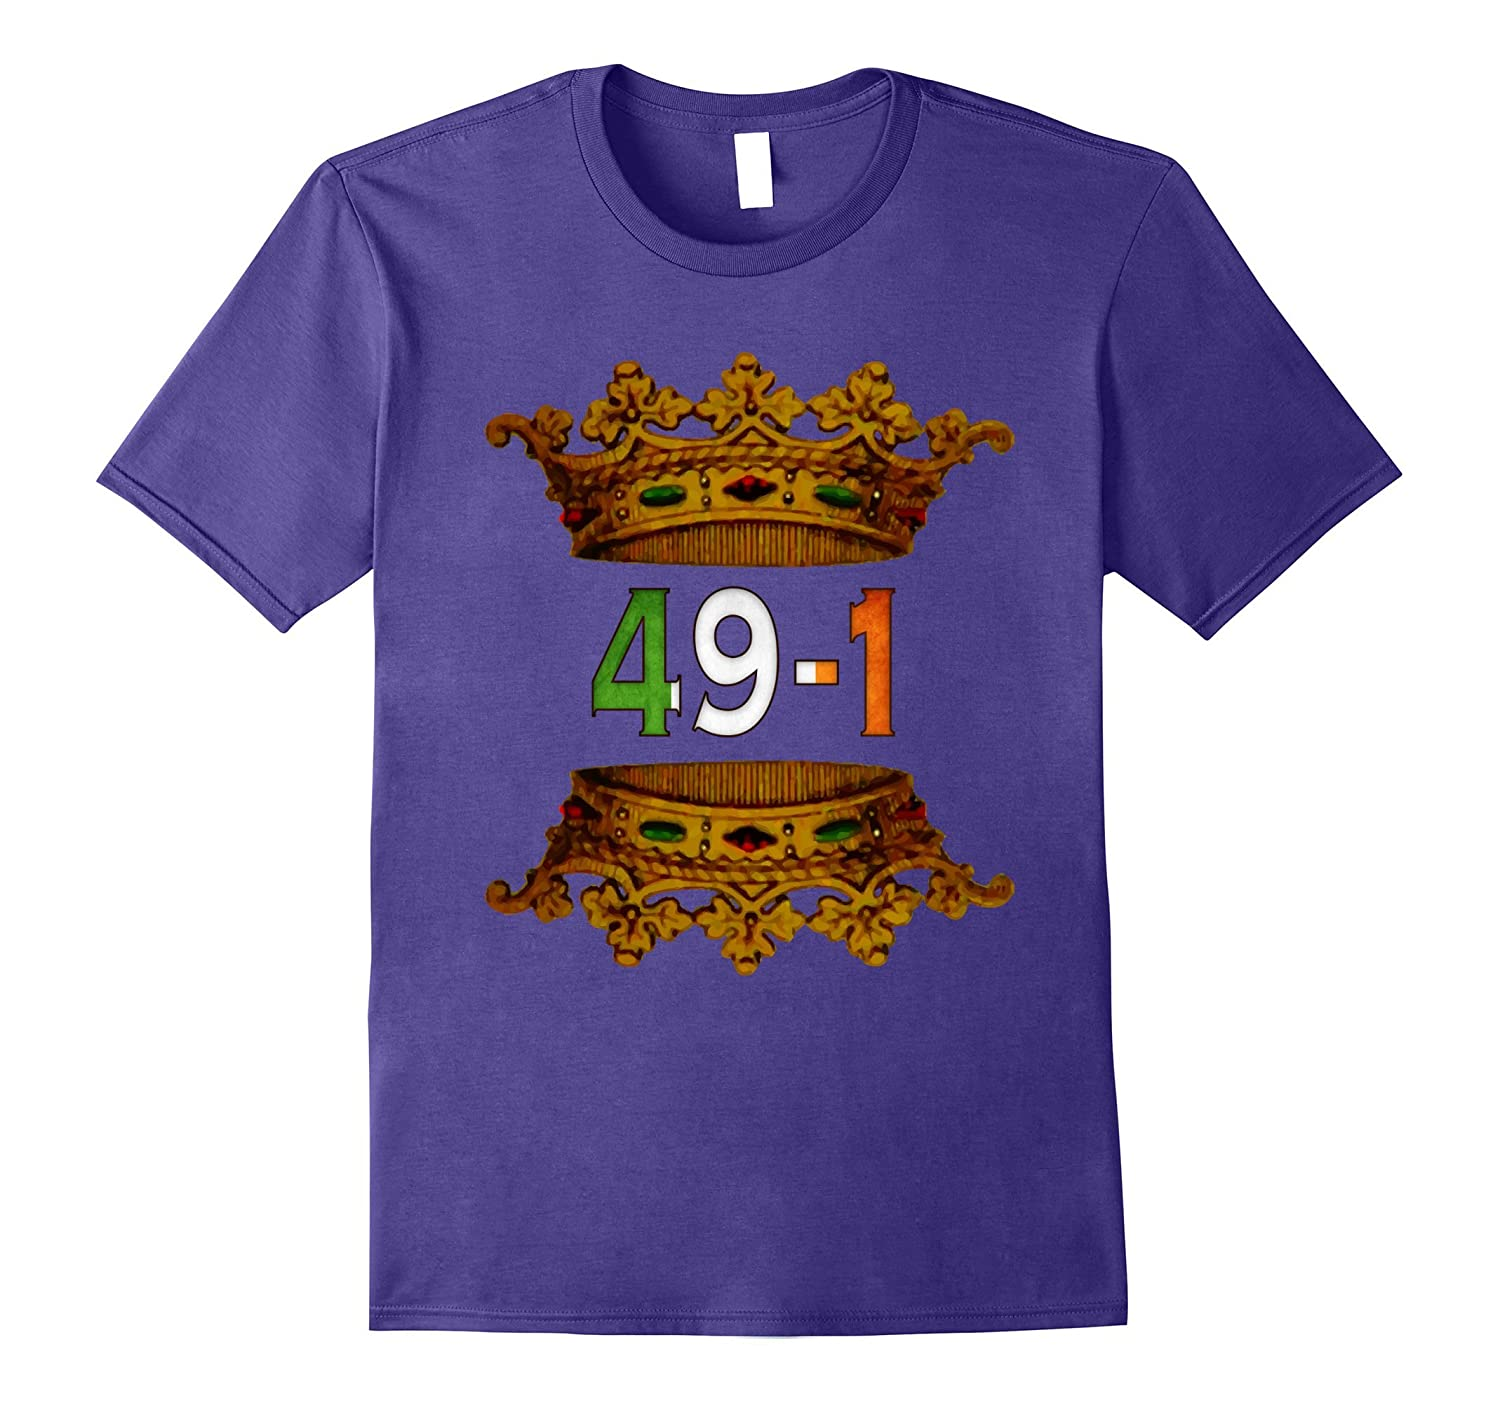 49-1 49 and 1 Crown T-Shirt 5 Color Options-PL